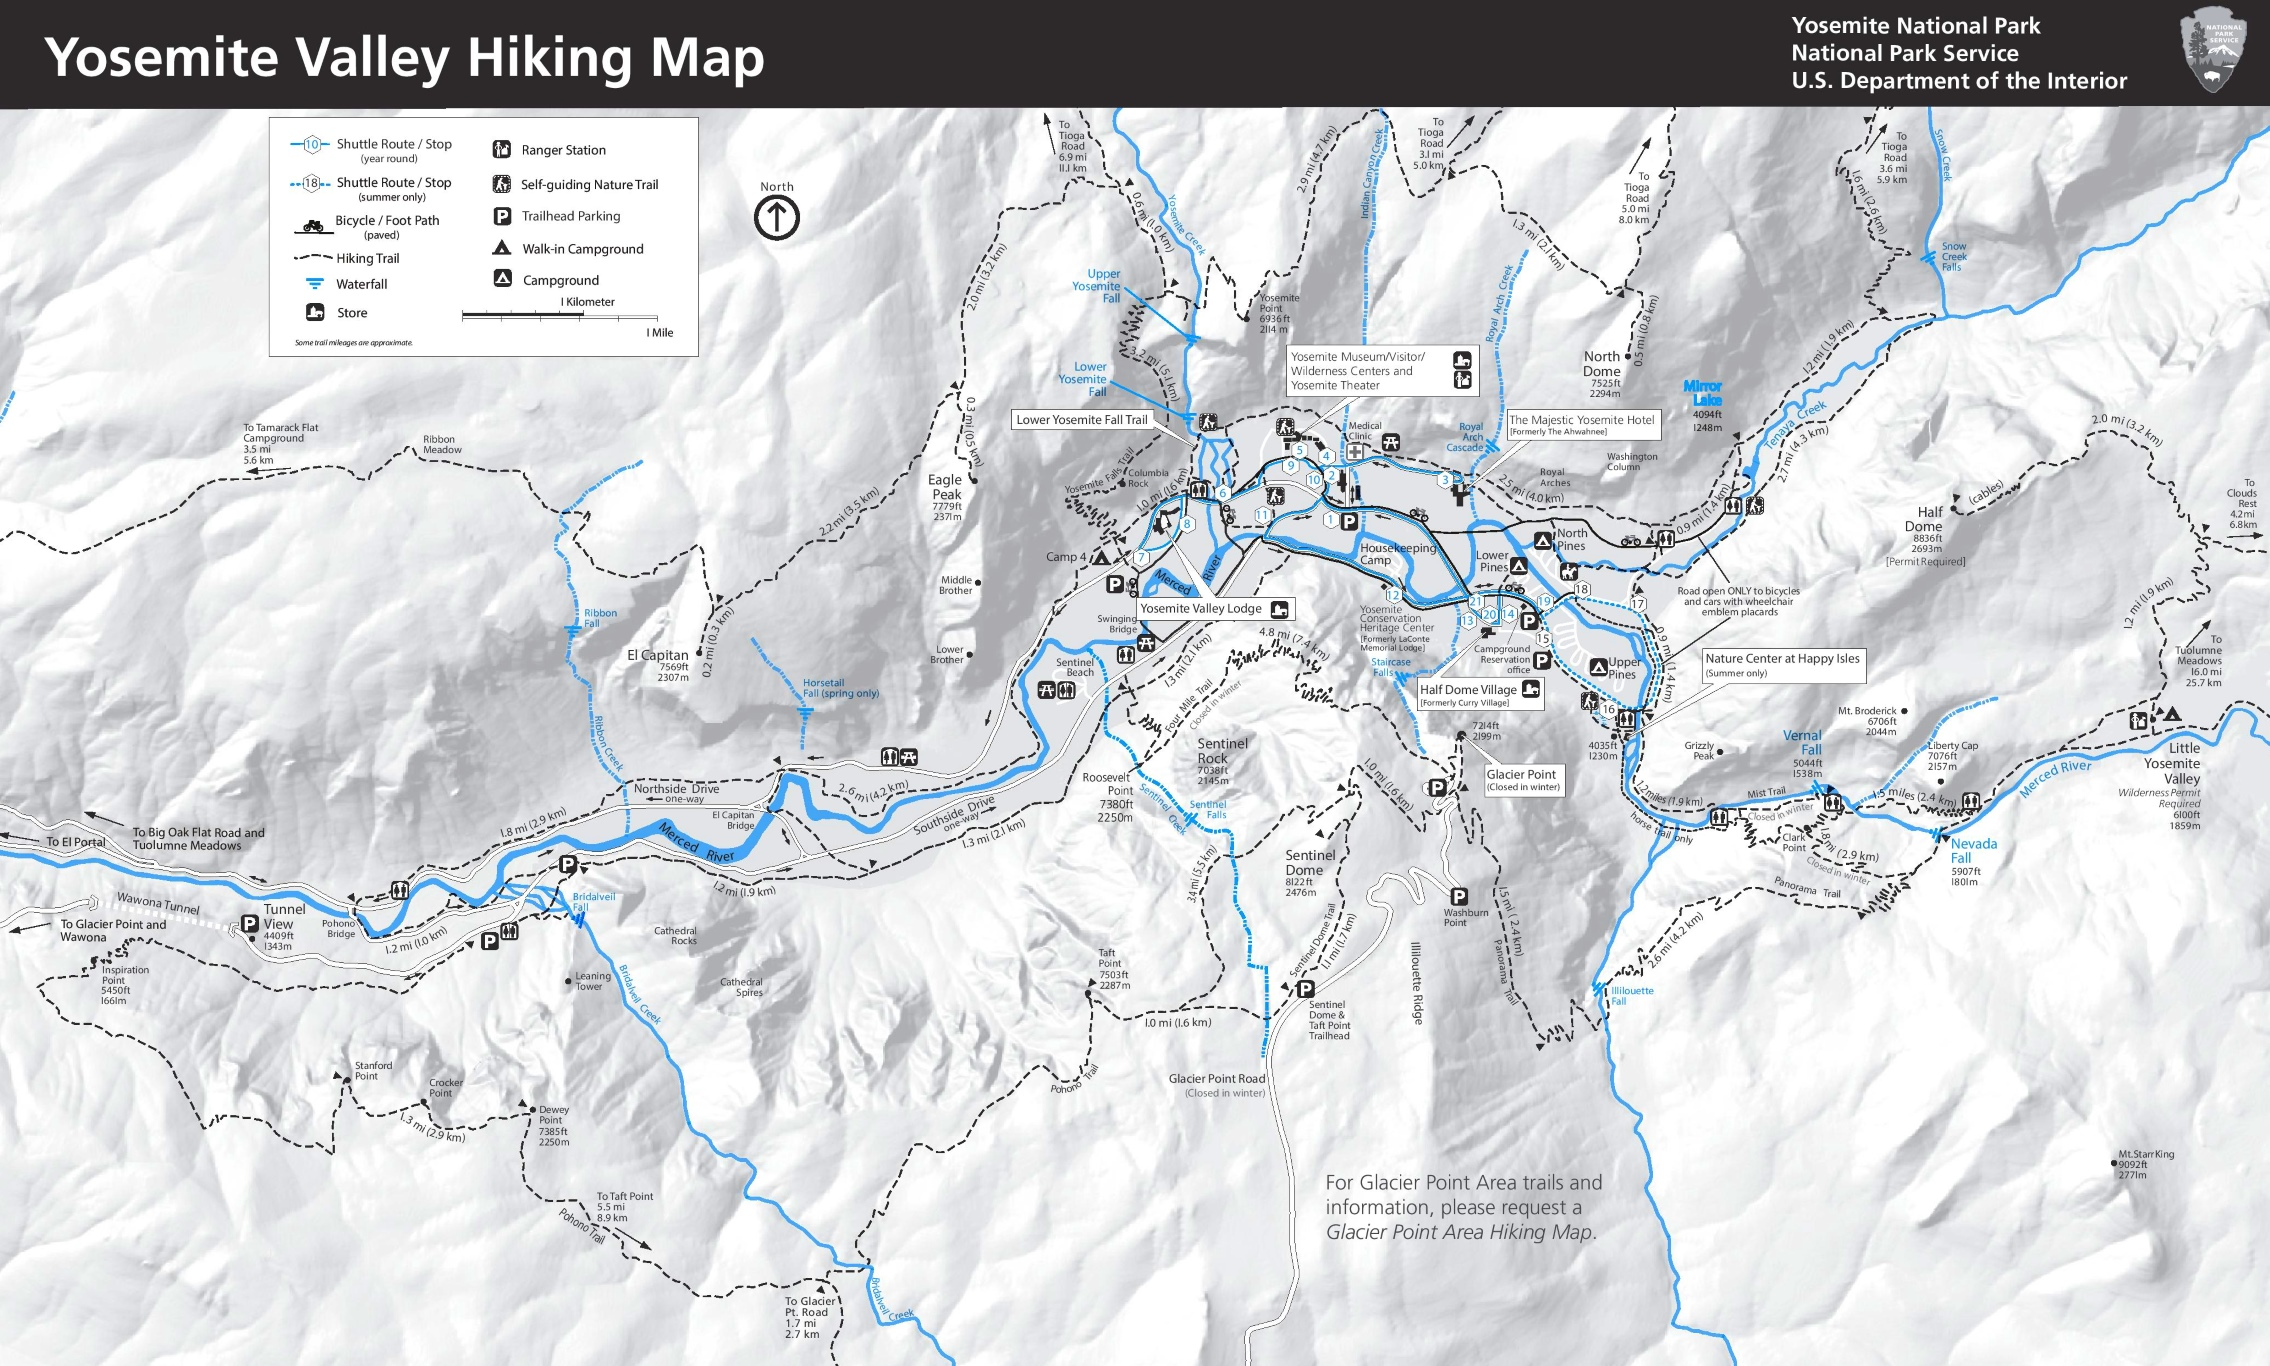 Yosemite Valley hiking map